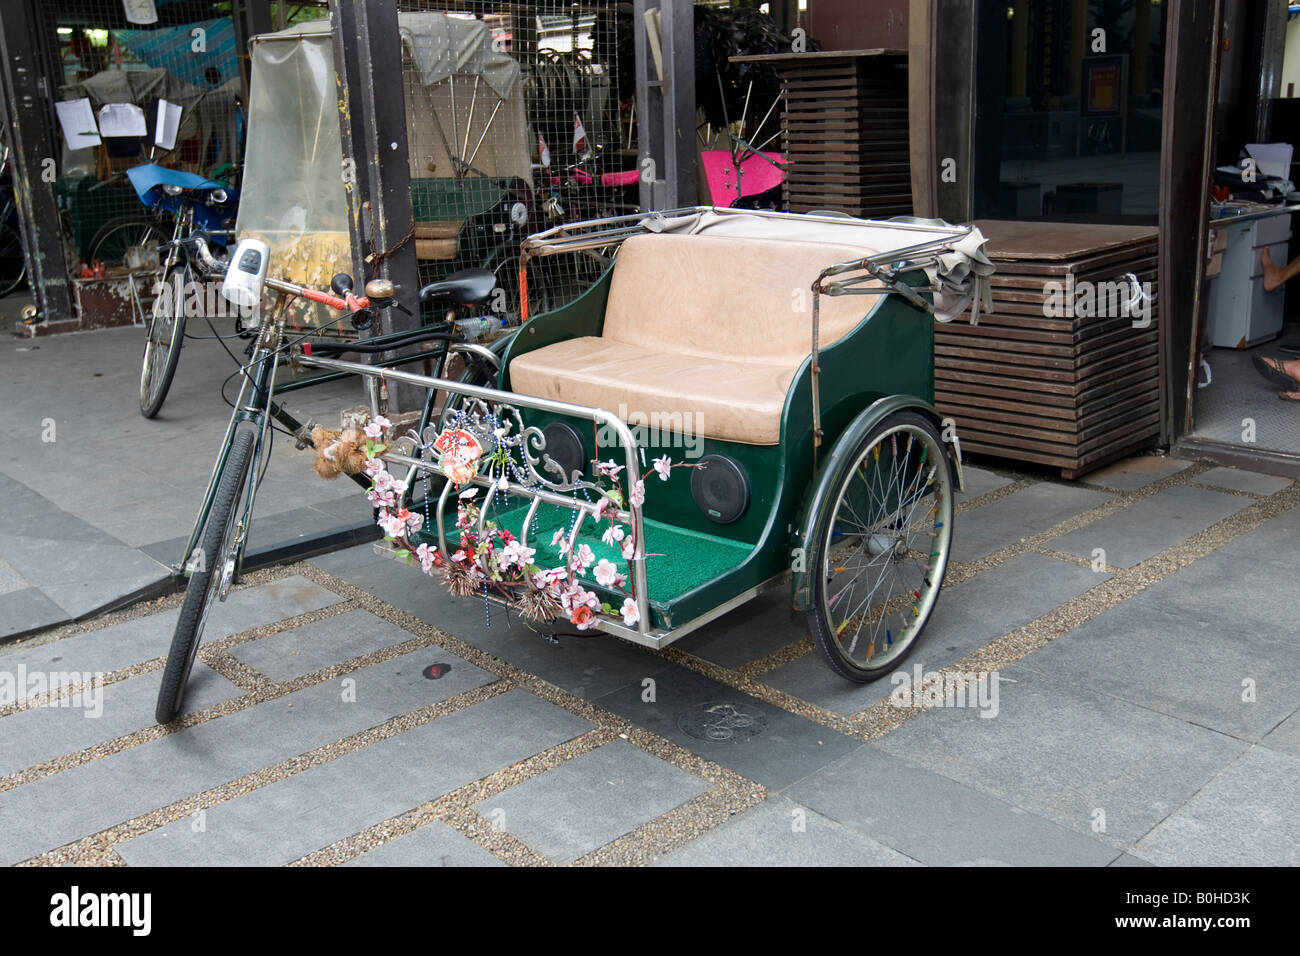 Bicycle taxi, Chinatown, Singapore, Southeast Asia - Stock Image